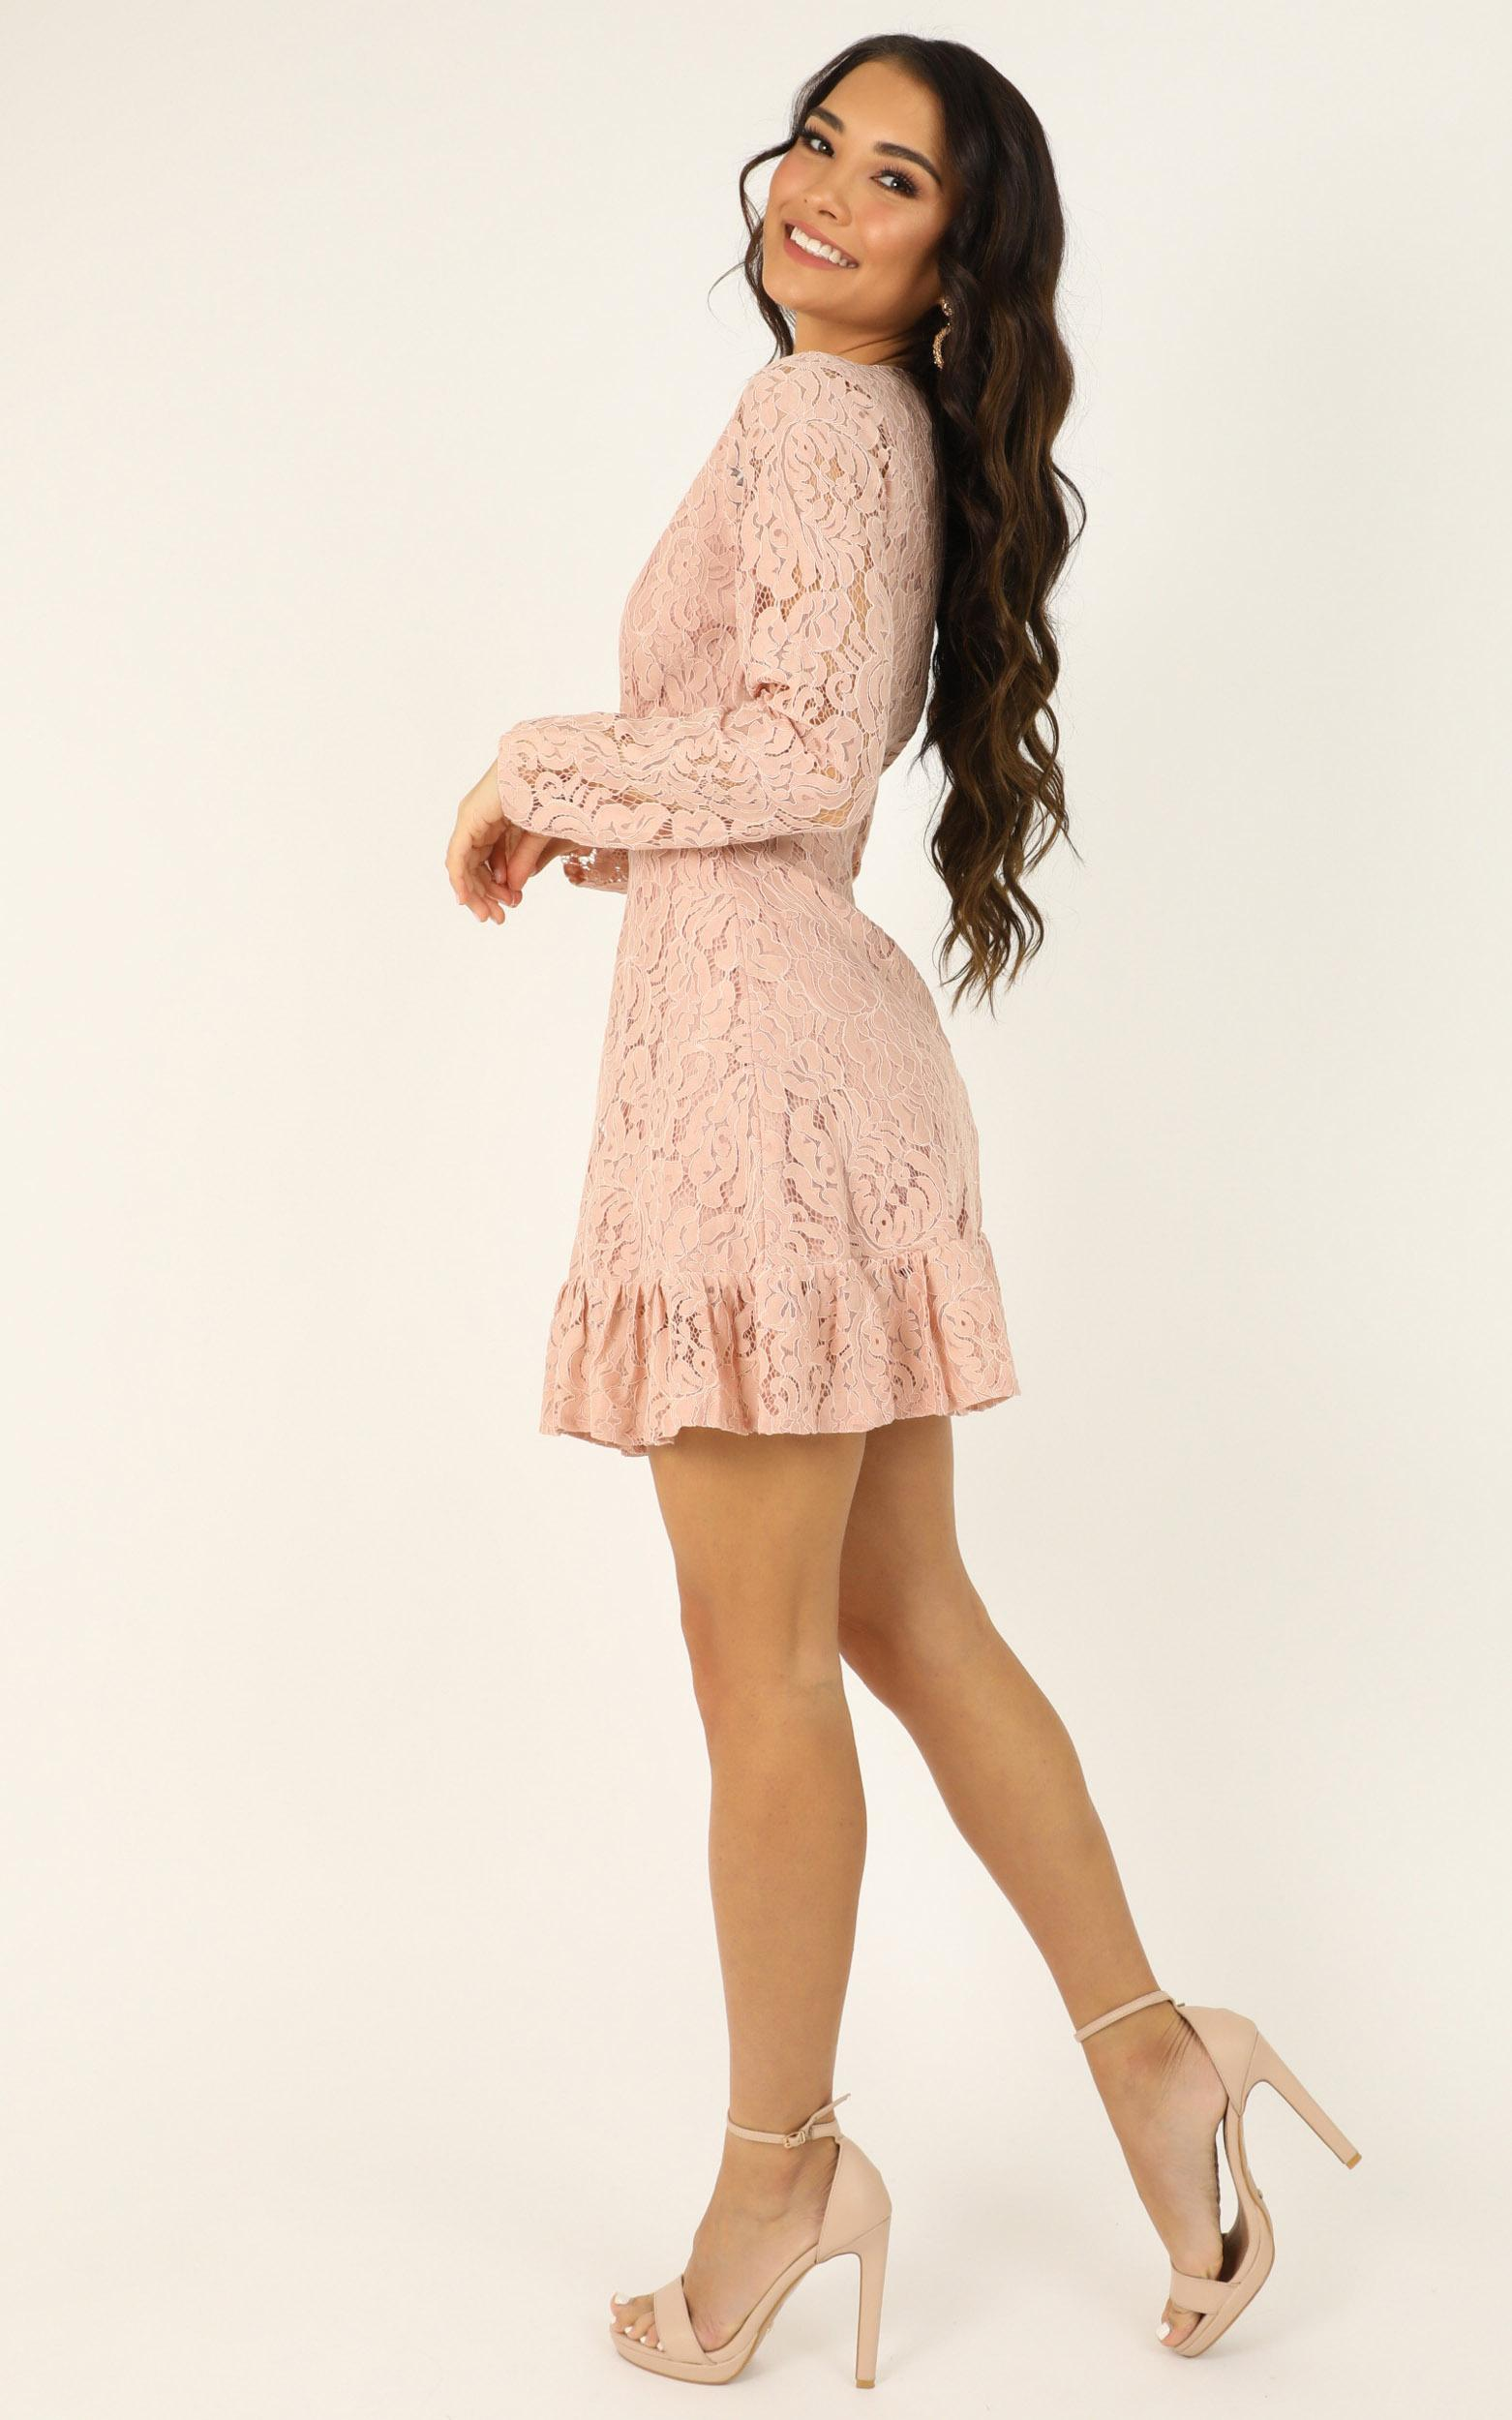 Love and Leave Dress in blush lace - 20 (XXXXL), Blush, hi-res image number null